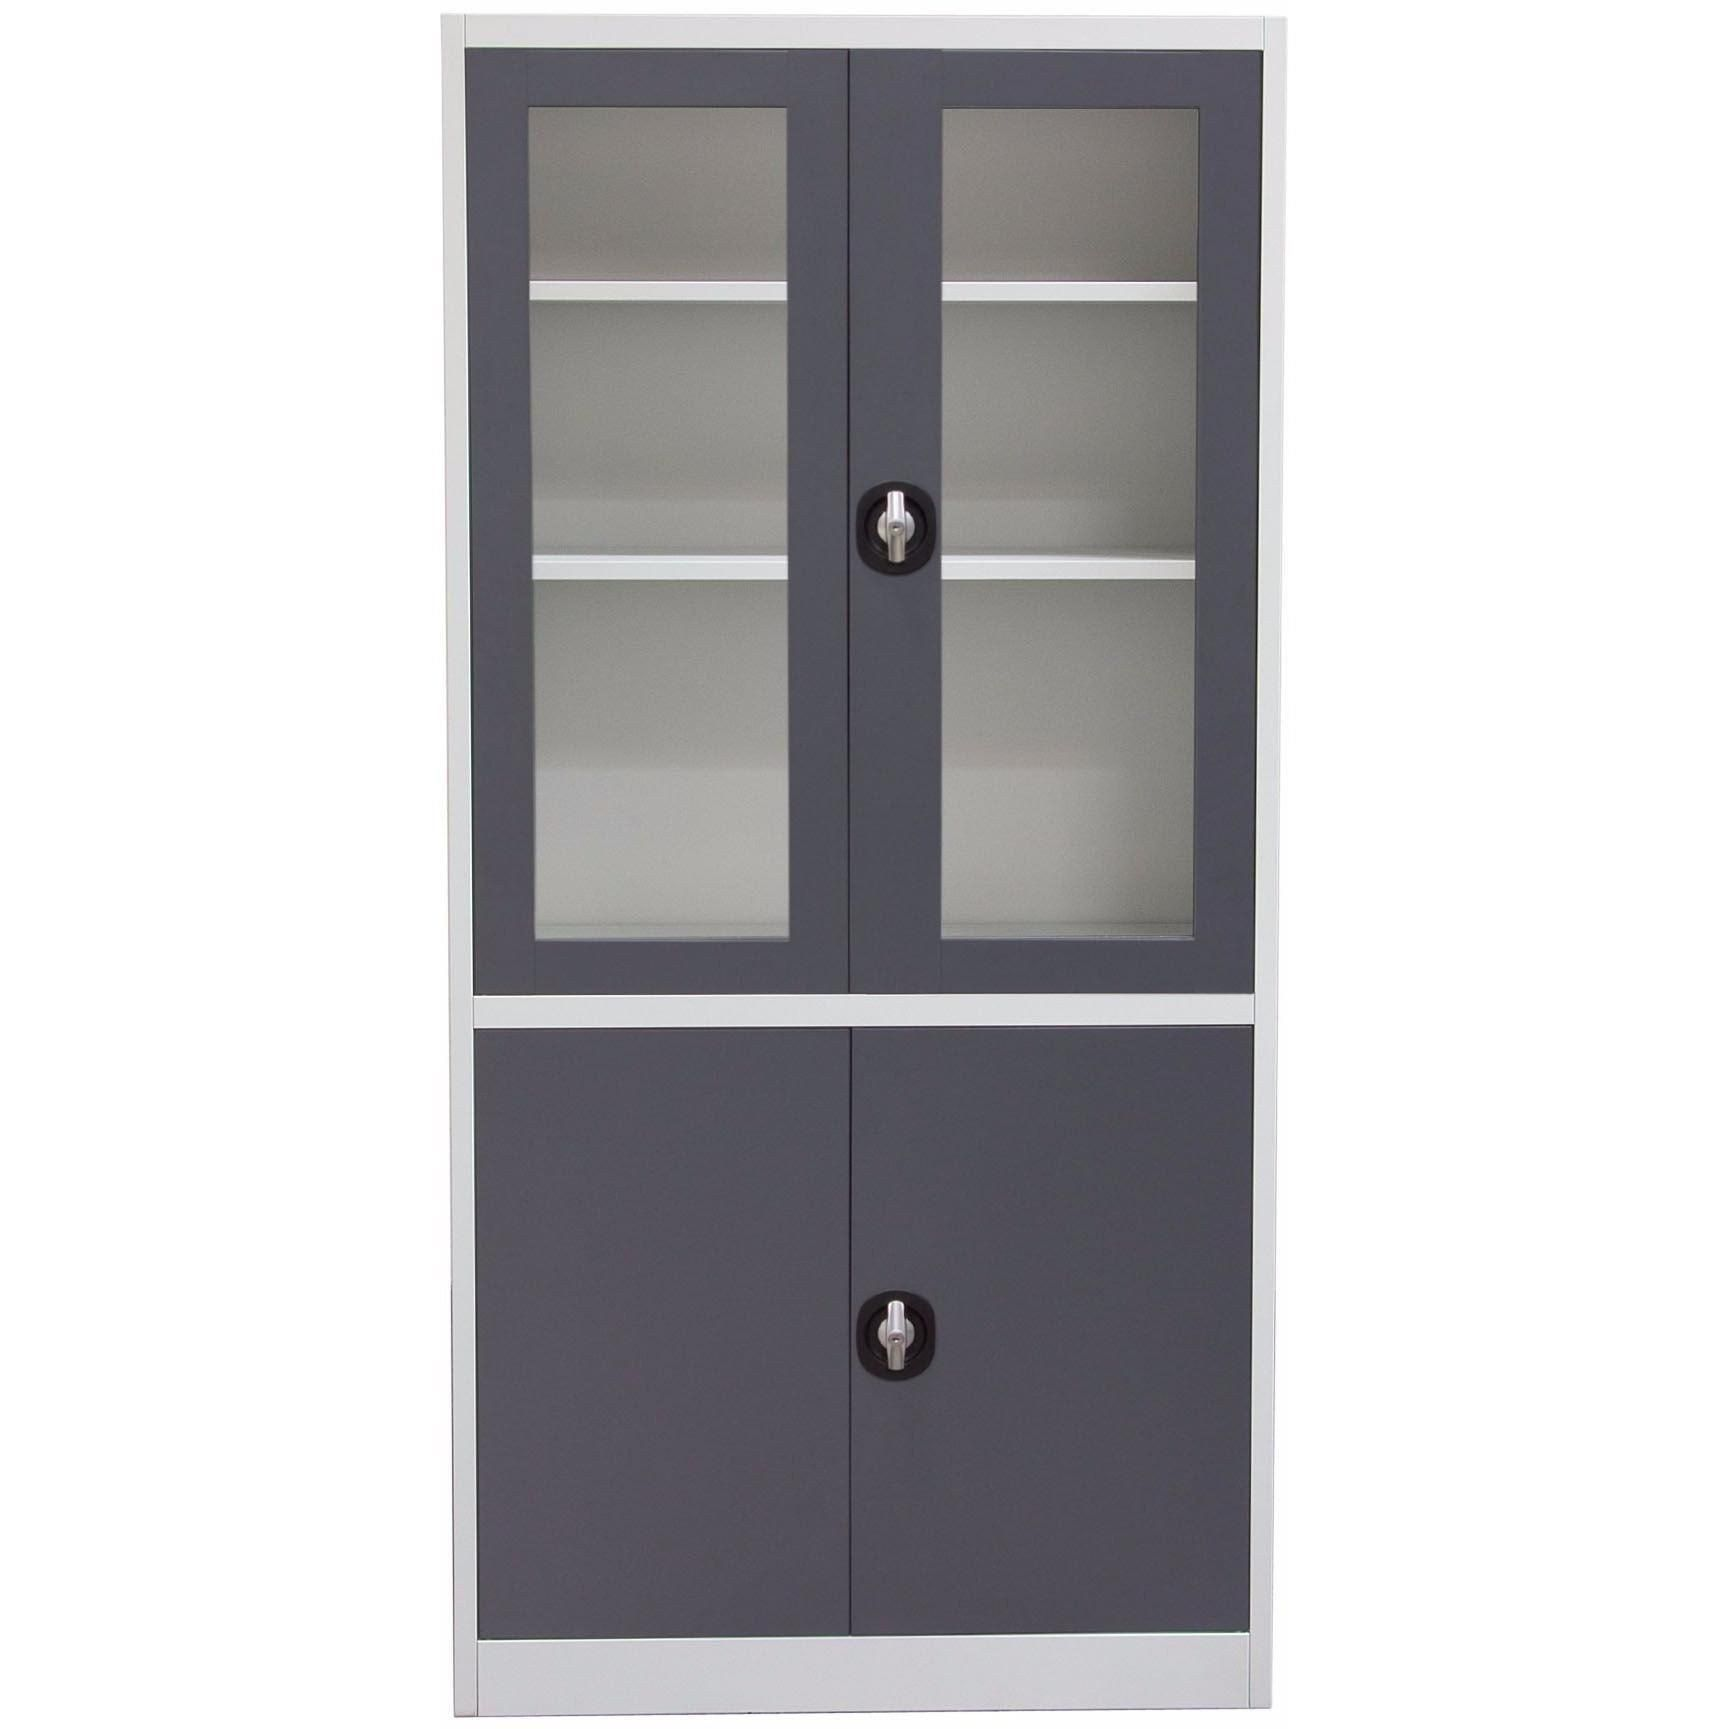 Tall Bookcase With Glass Doors Inspirational 4 Door 5 Shelf Bookcase With Tempered Glass Door Front Key In 2020 5 Shelf Bookcase Tempered Glass Door Glass Door